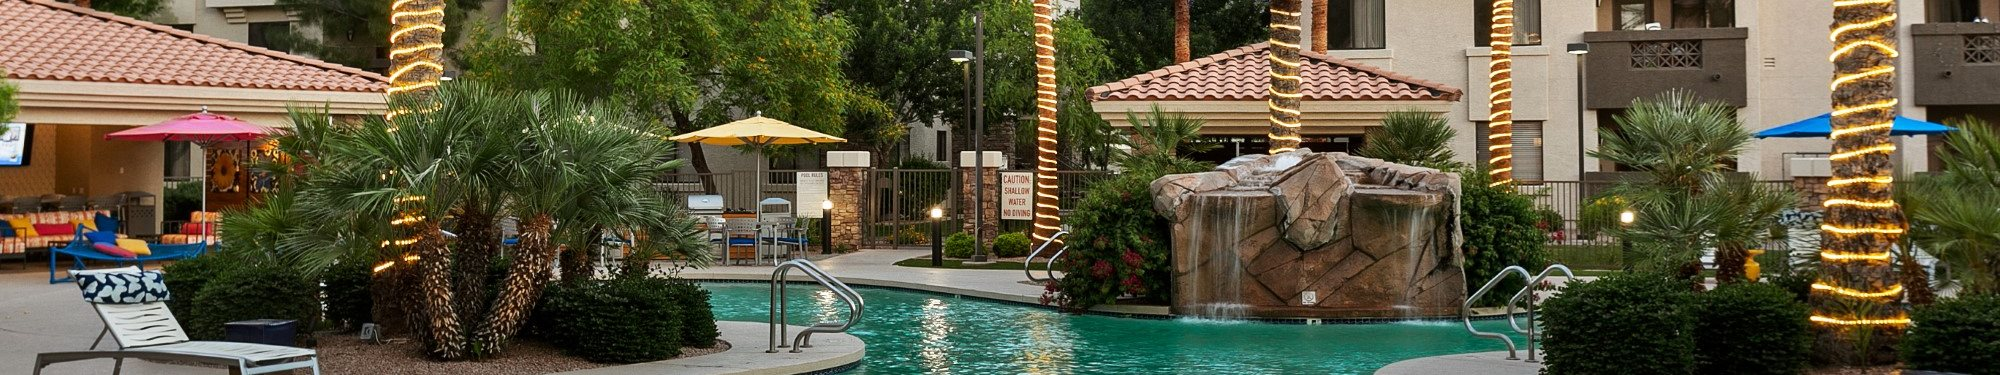 San Portella Apartments Pool Area Waterfall Banner